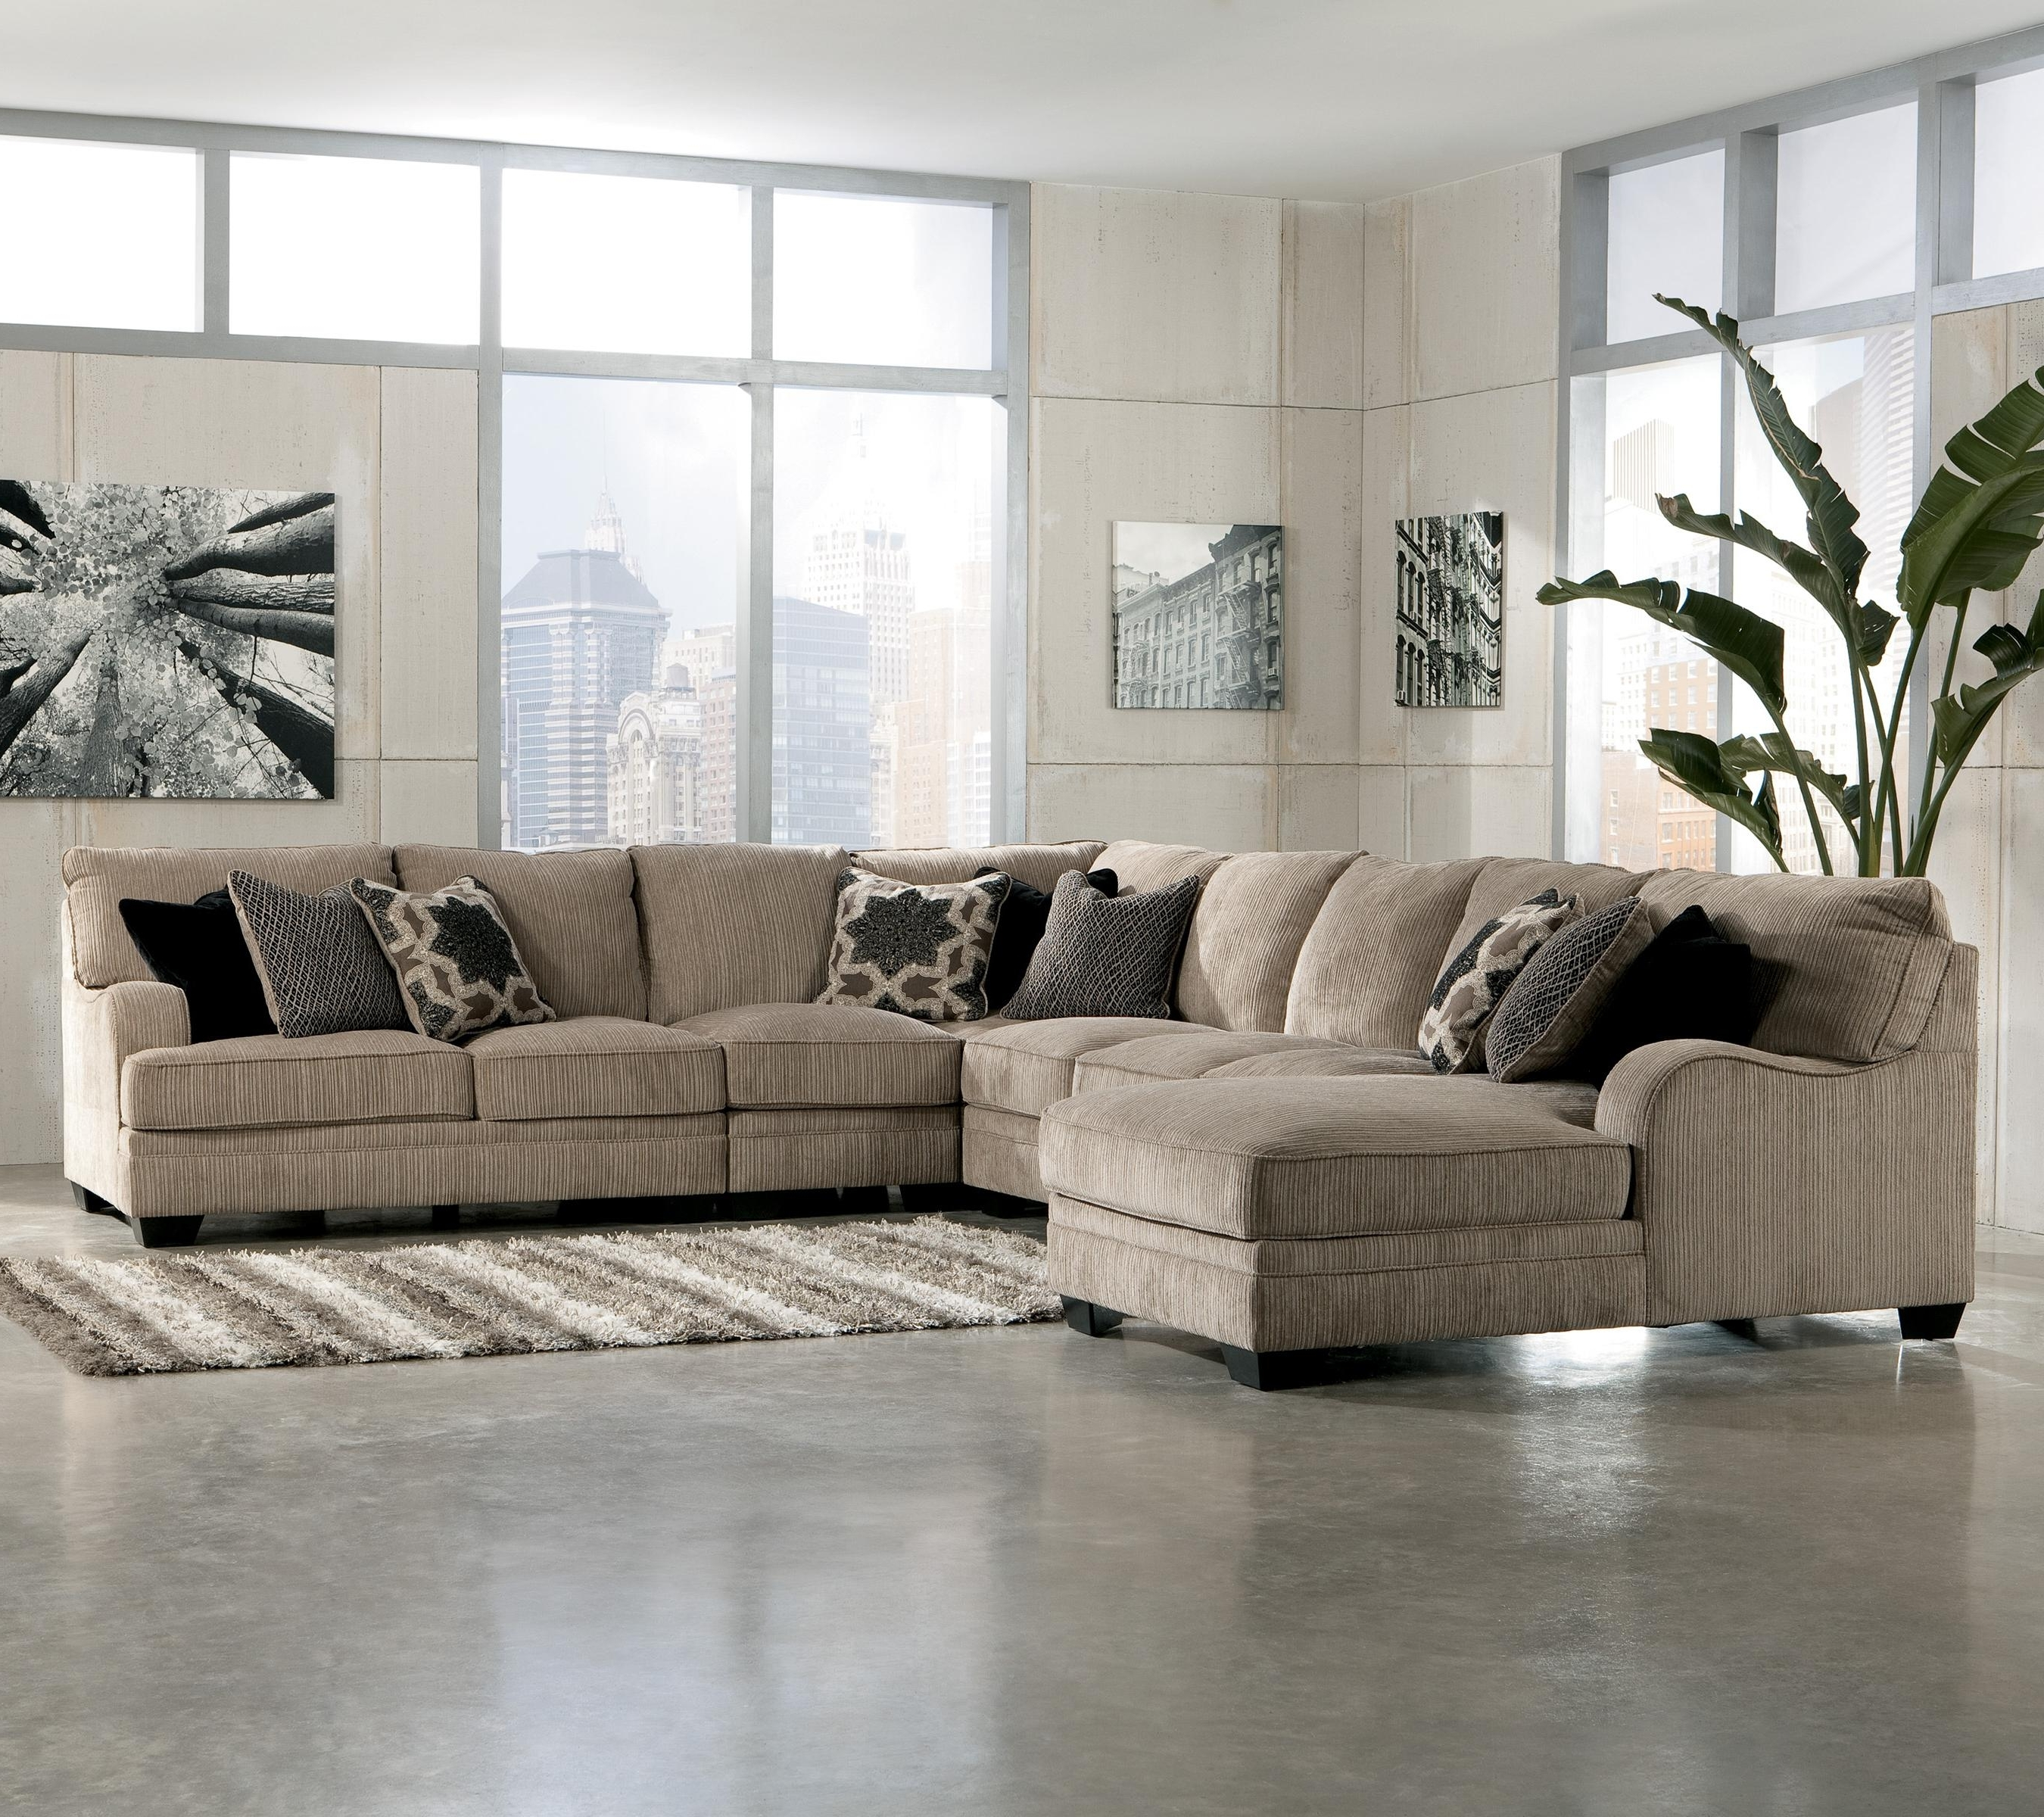 Featured Photo of Rochester Ny Sectional Sofas